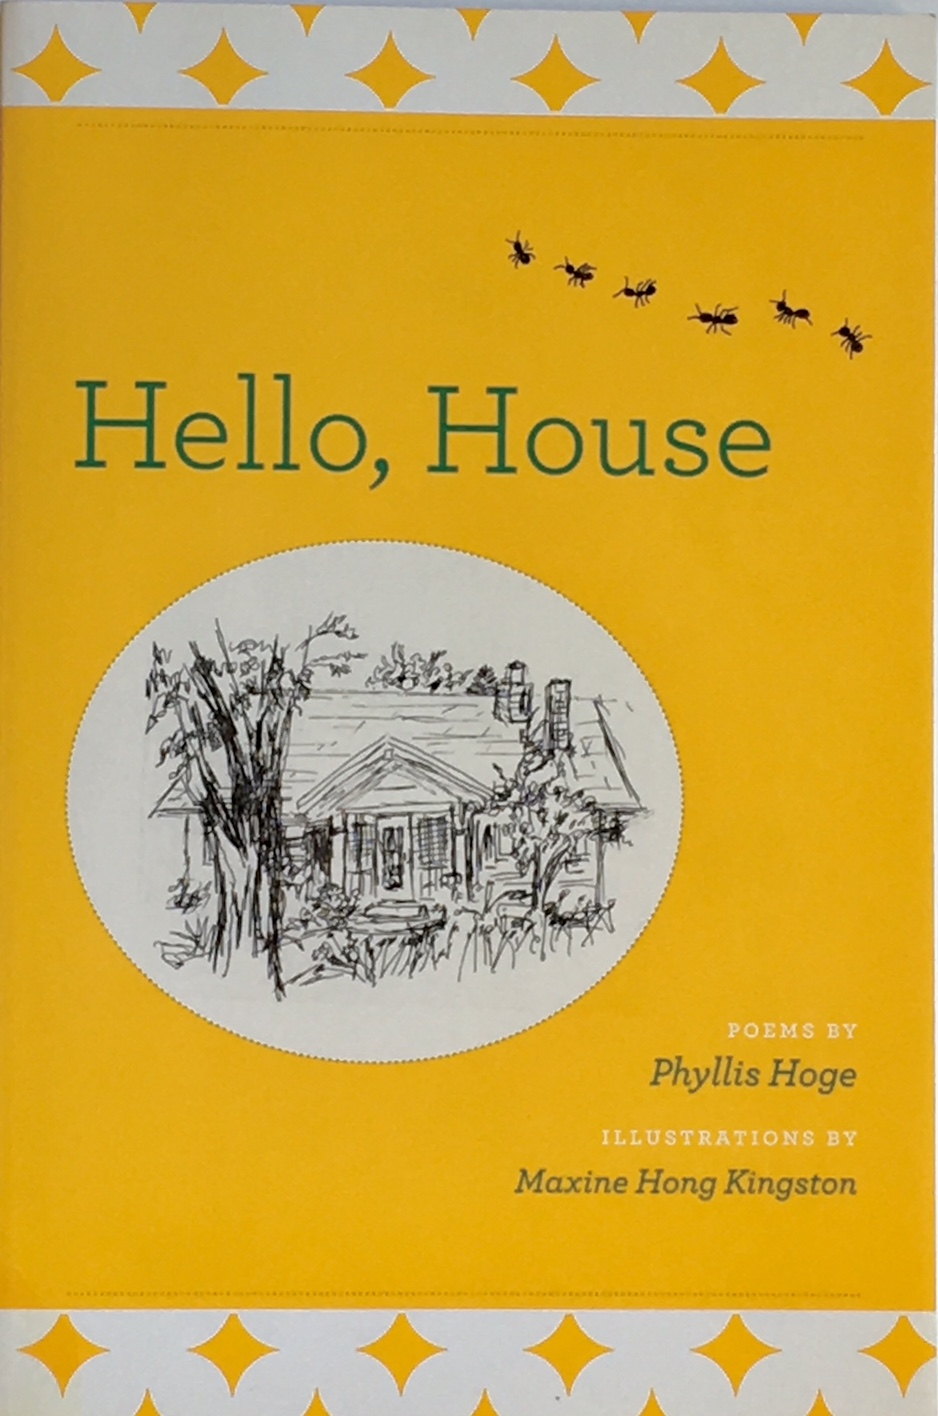 Hello House  by Phyllis Hoge illustrated by Maxine Hong Kingston